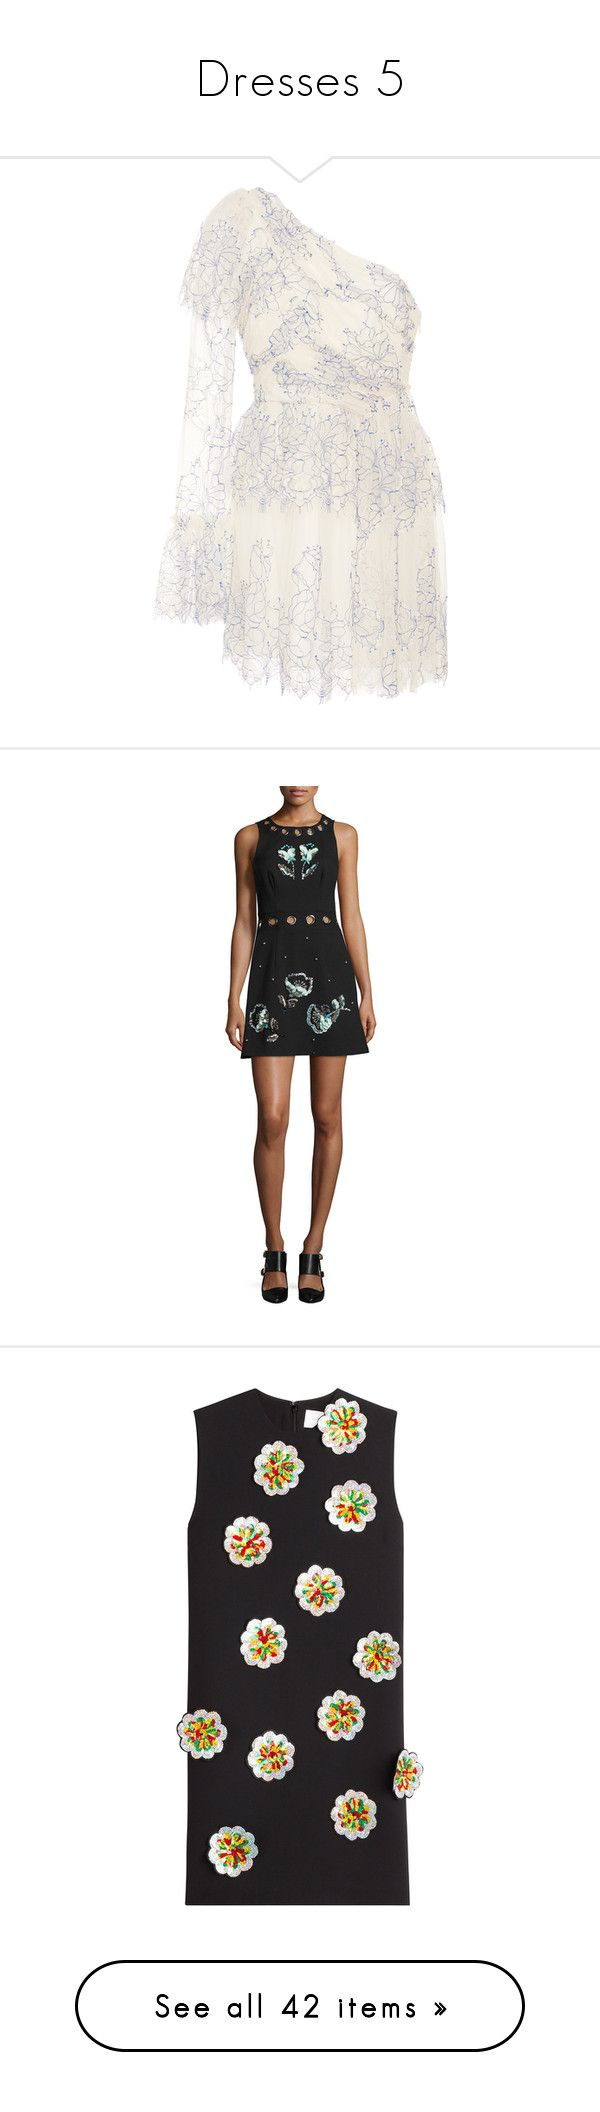 """""""Dresses 5"""" by onesweetthing ❤ liked on Polyvore featuring dresses, blue, empire waist dress, asymmetrical neckline dress, empire waist short dress, empire waist mini dress, blue empire waist dress, black, women's apparel dresses and short floral dresses"""